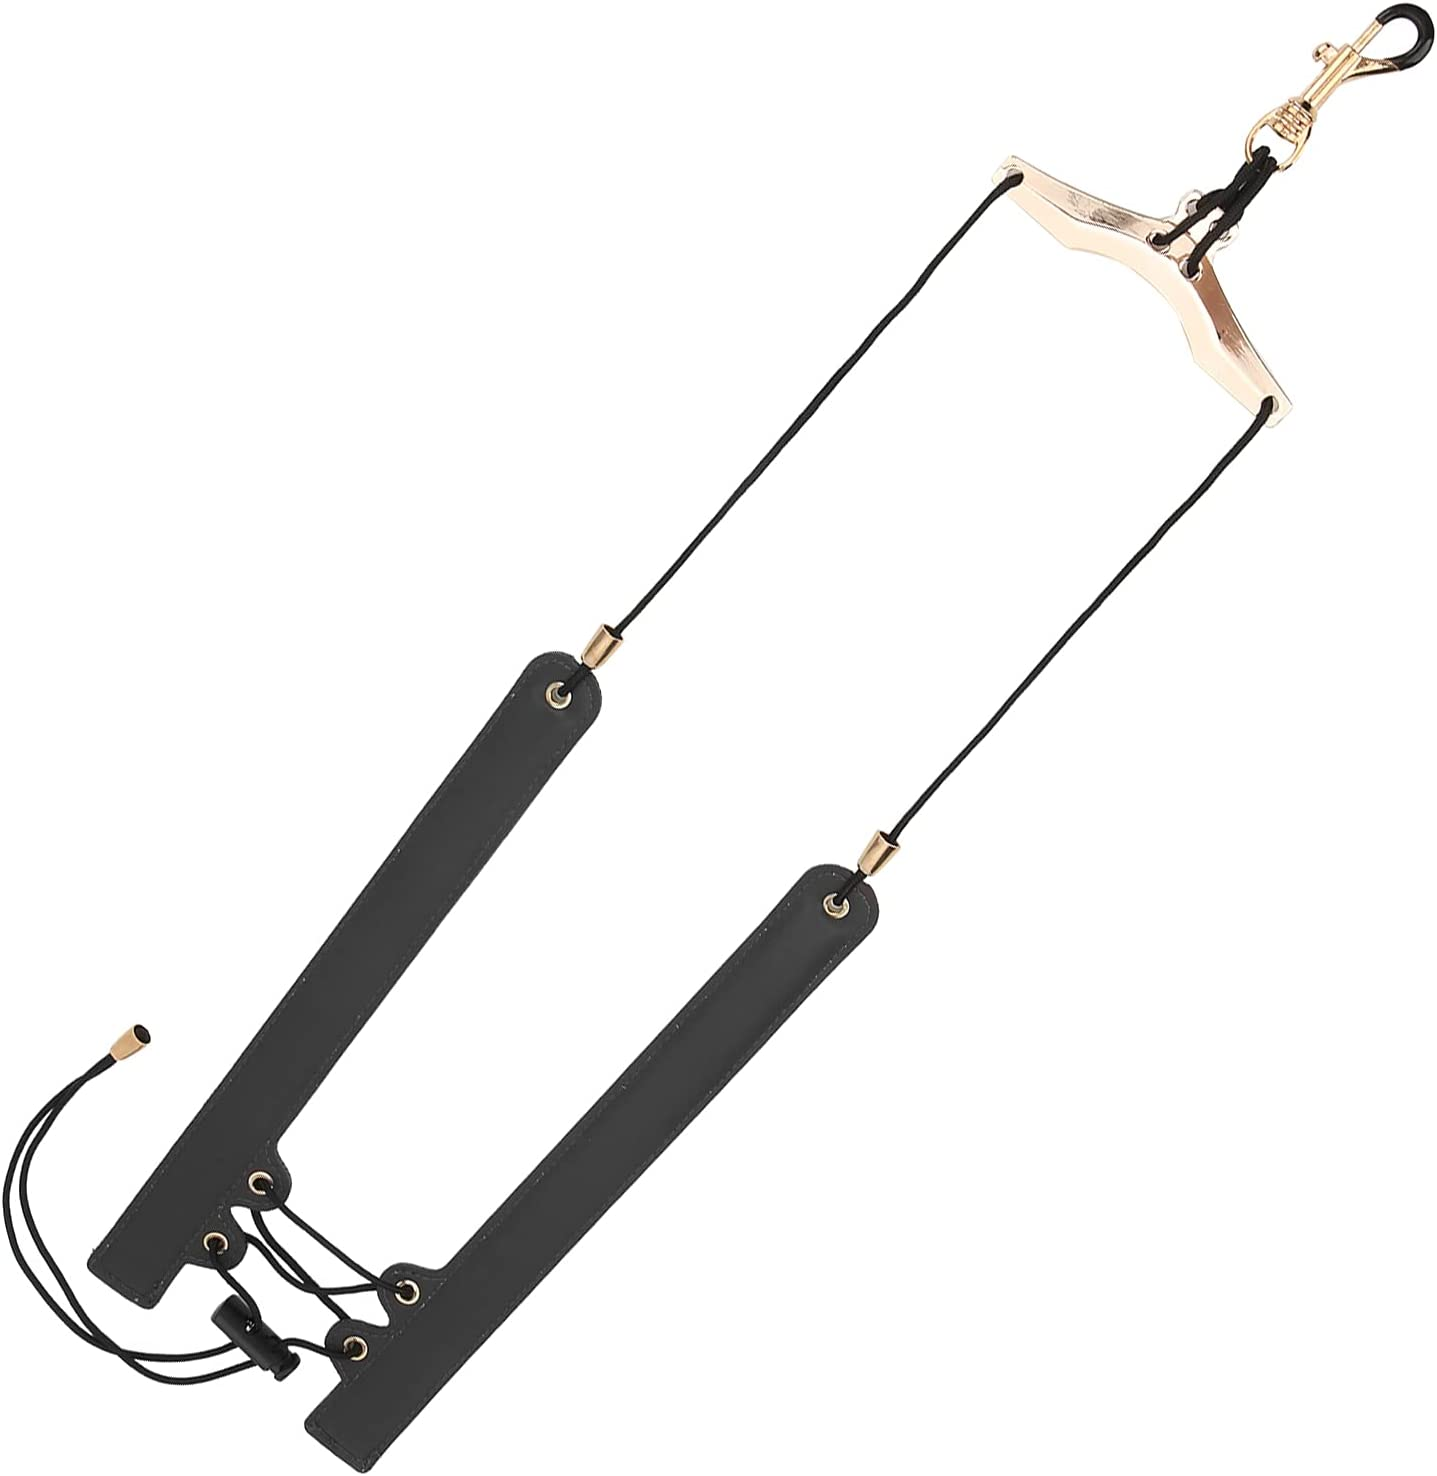 Pinsofy Sax Neck 2021 spring and summer new Holders Large No Adjustable Stress Ar Carrying Max 86% OFF